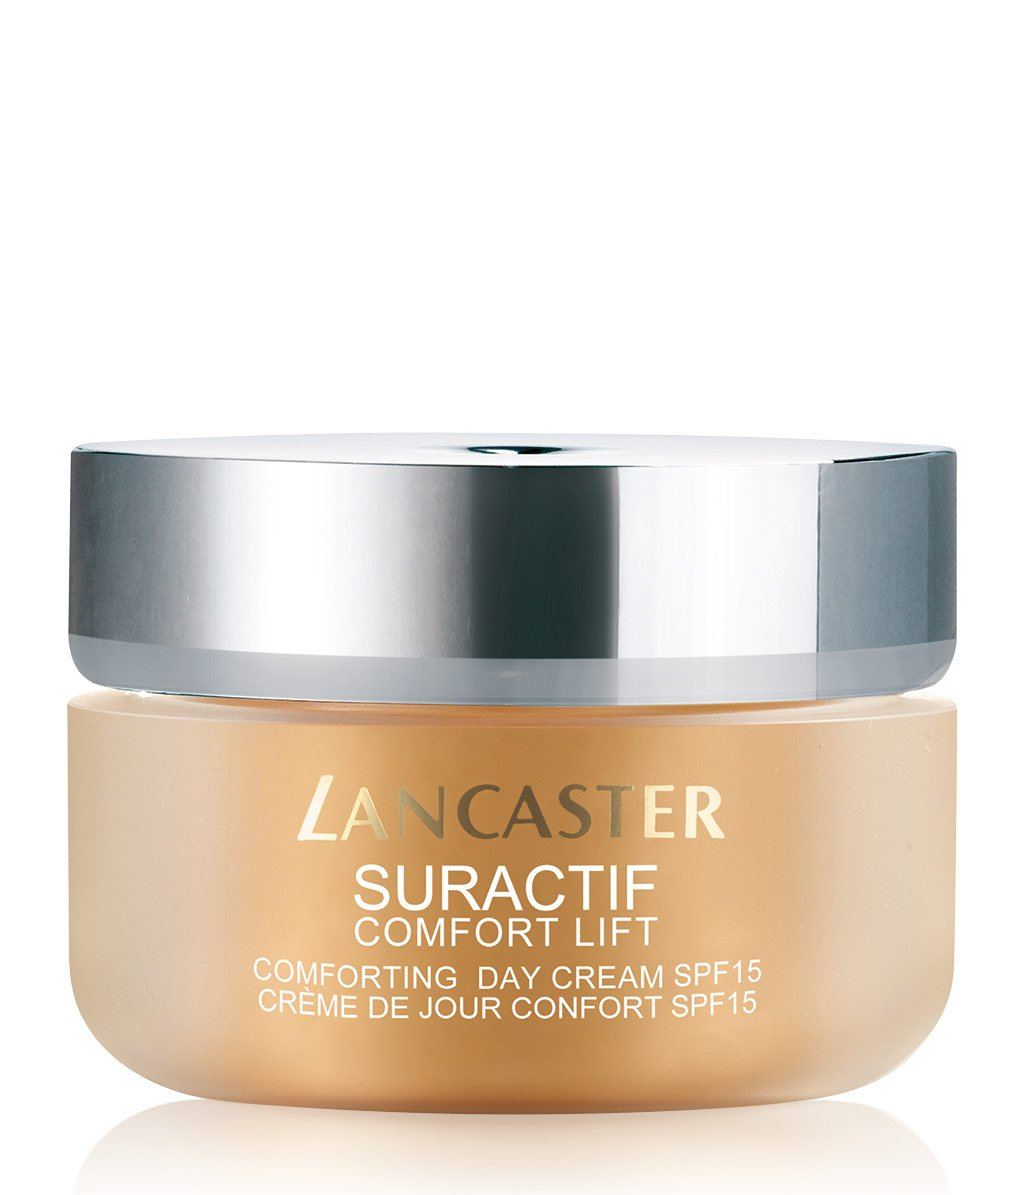 Lancaster suractif comfort lift comforting spf 15 for Givenchy teint miroir lift comfort